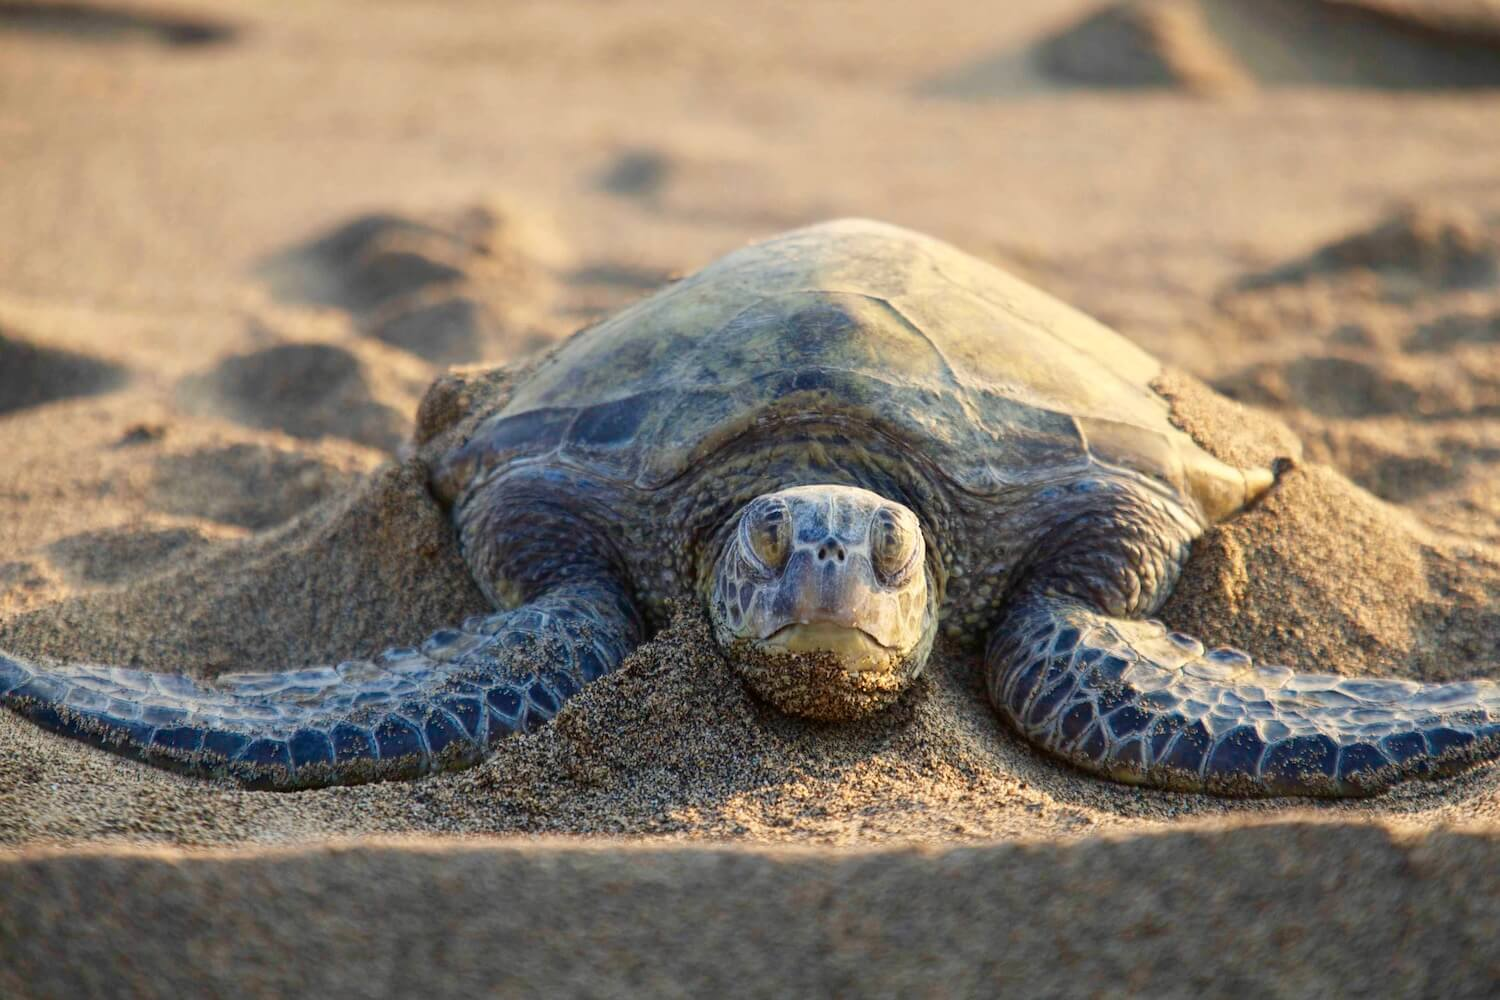 Green turtle on sand, looking straight at camera.